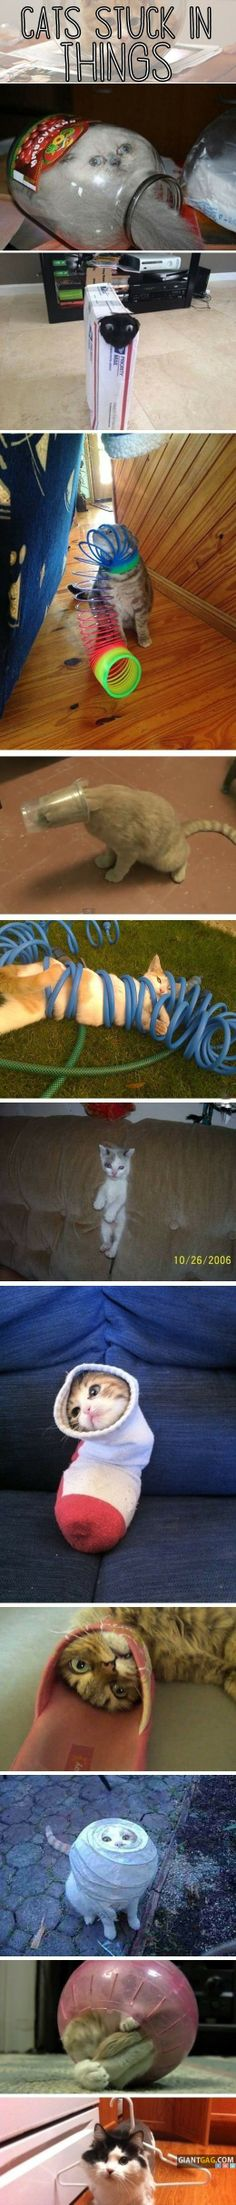 Pictures of the day -35 pics- Cats Stuck In Things